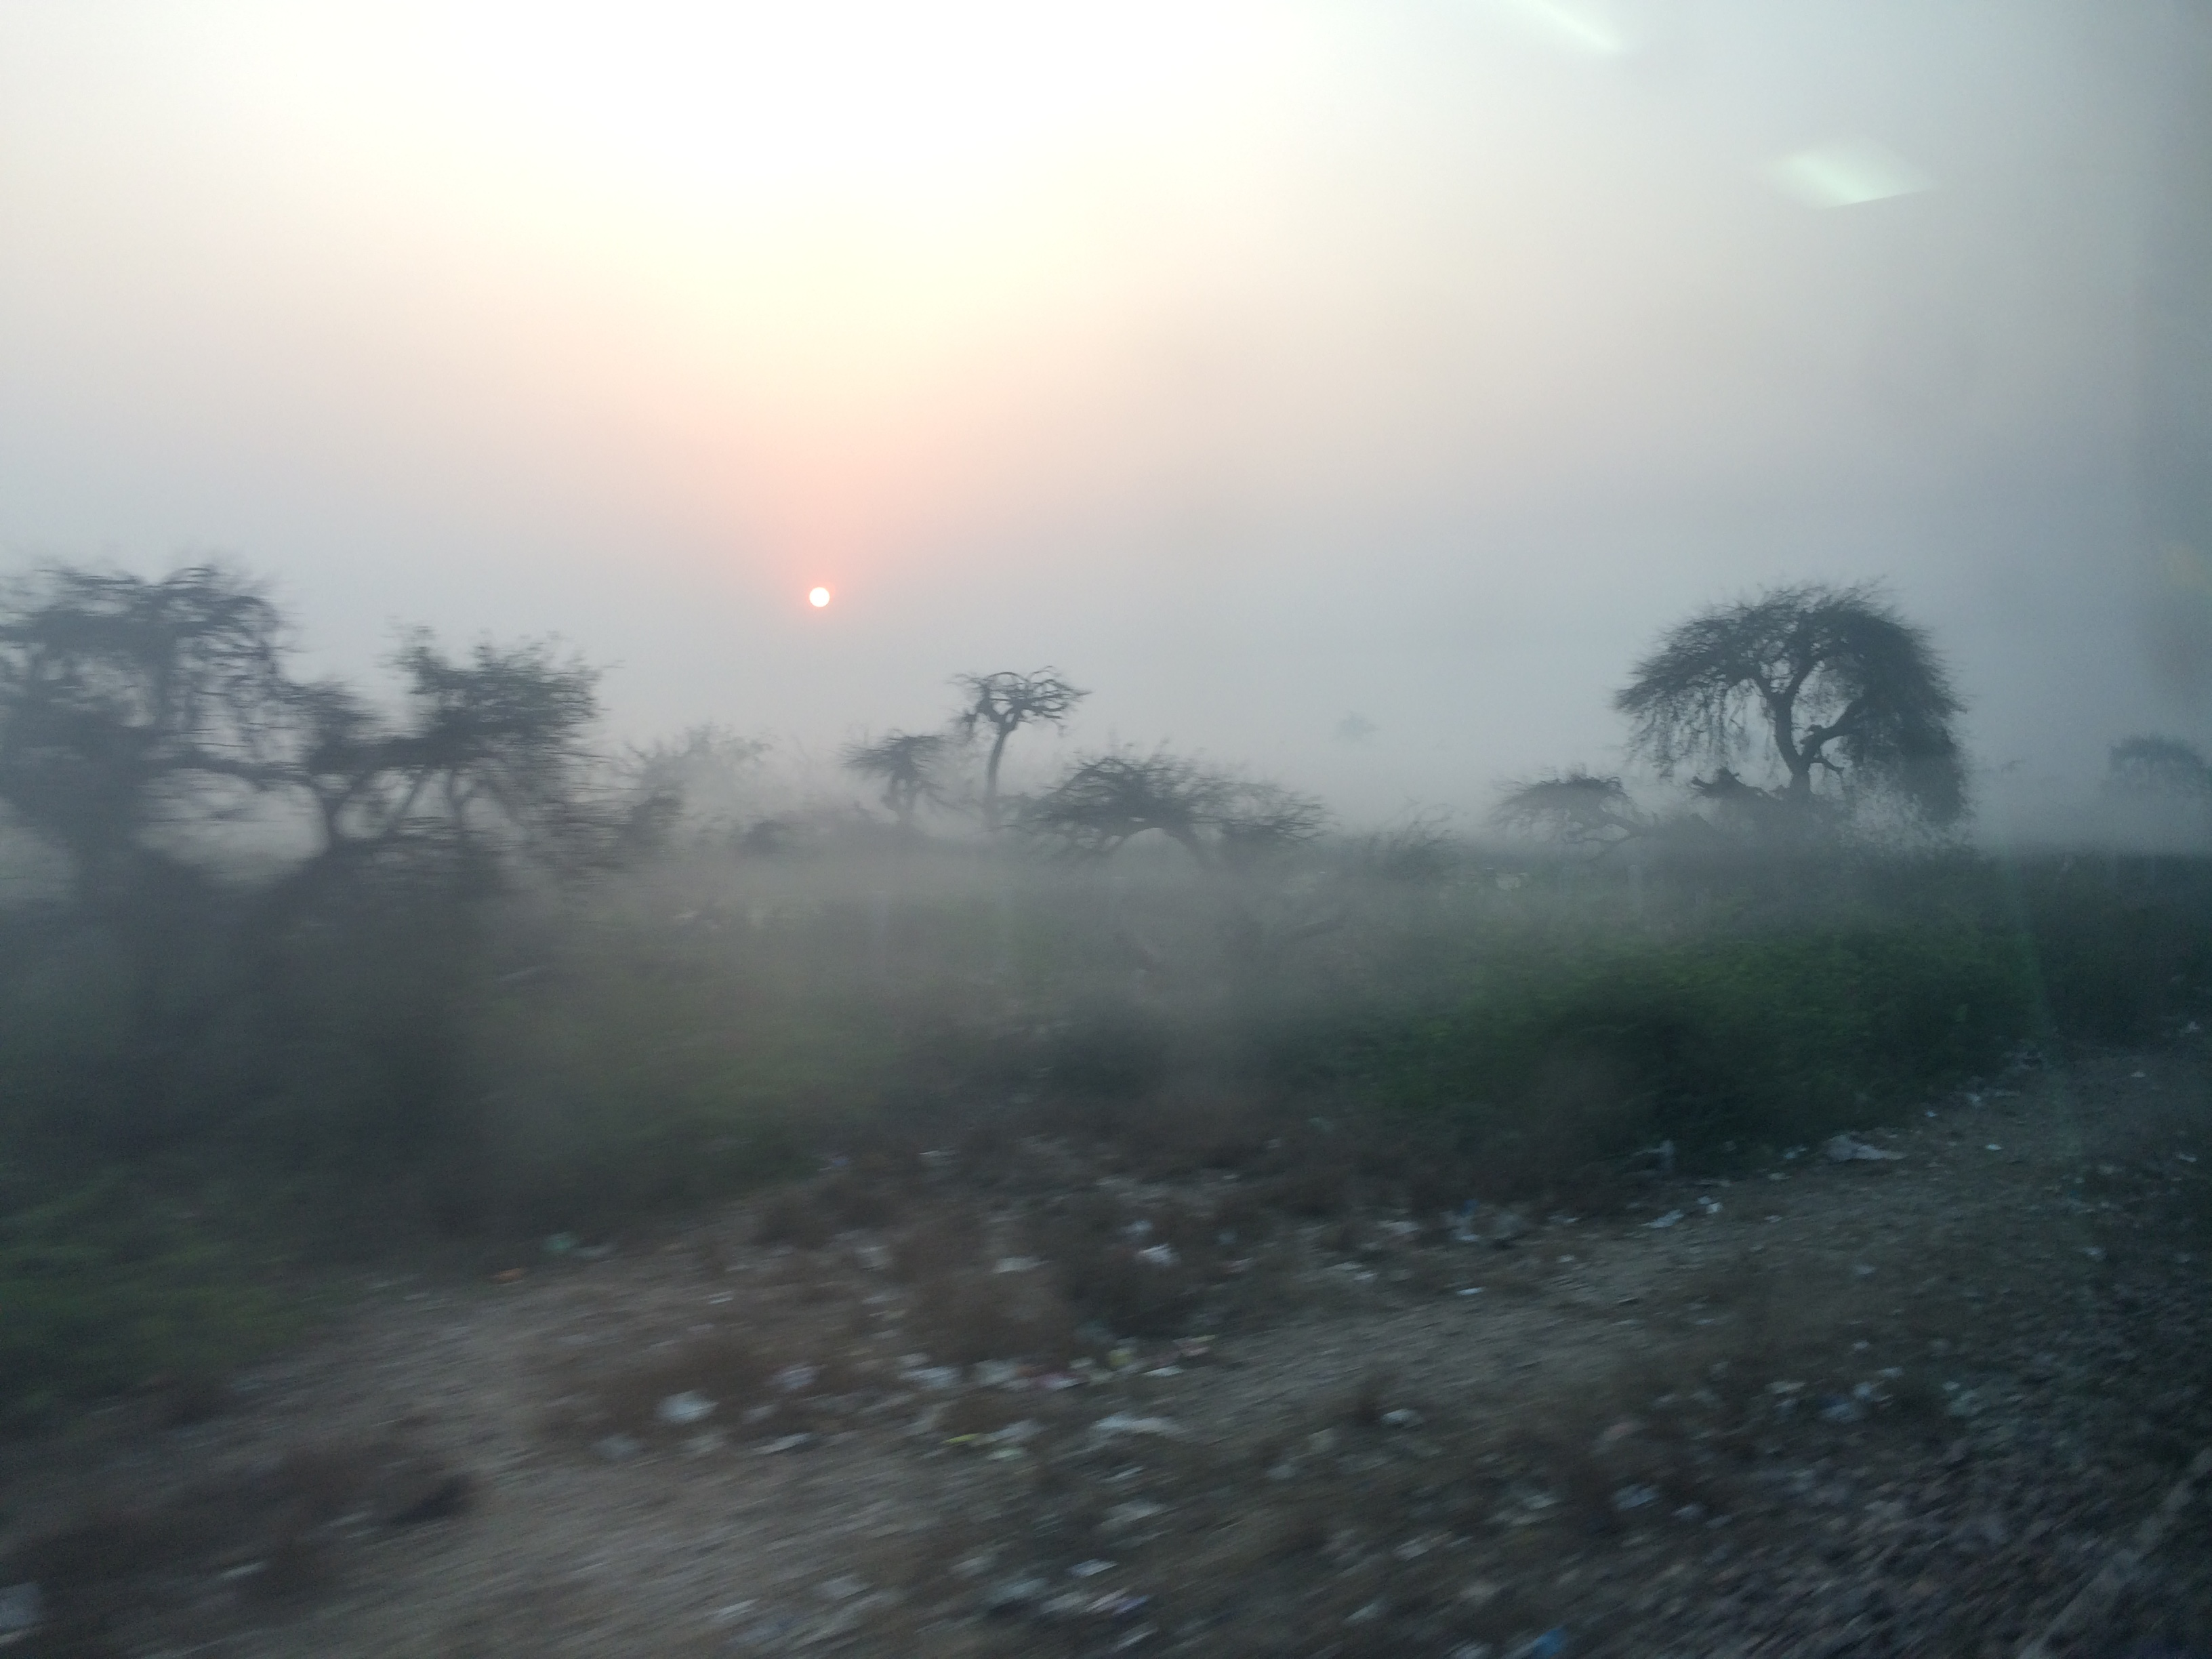 Morning views from the train